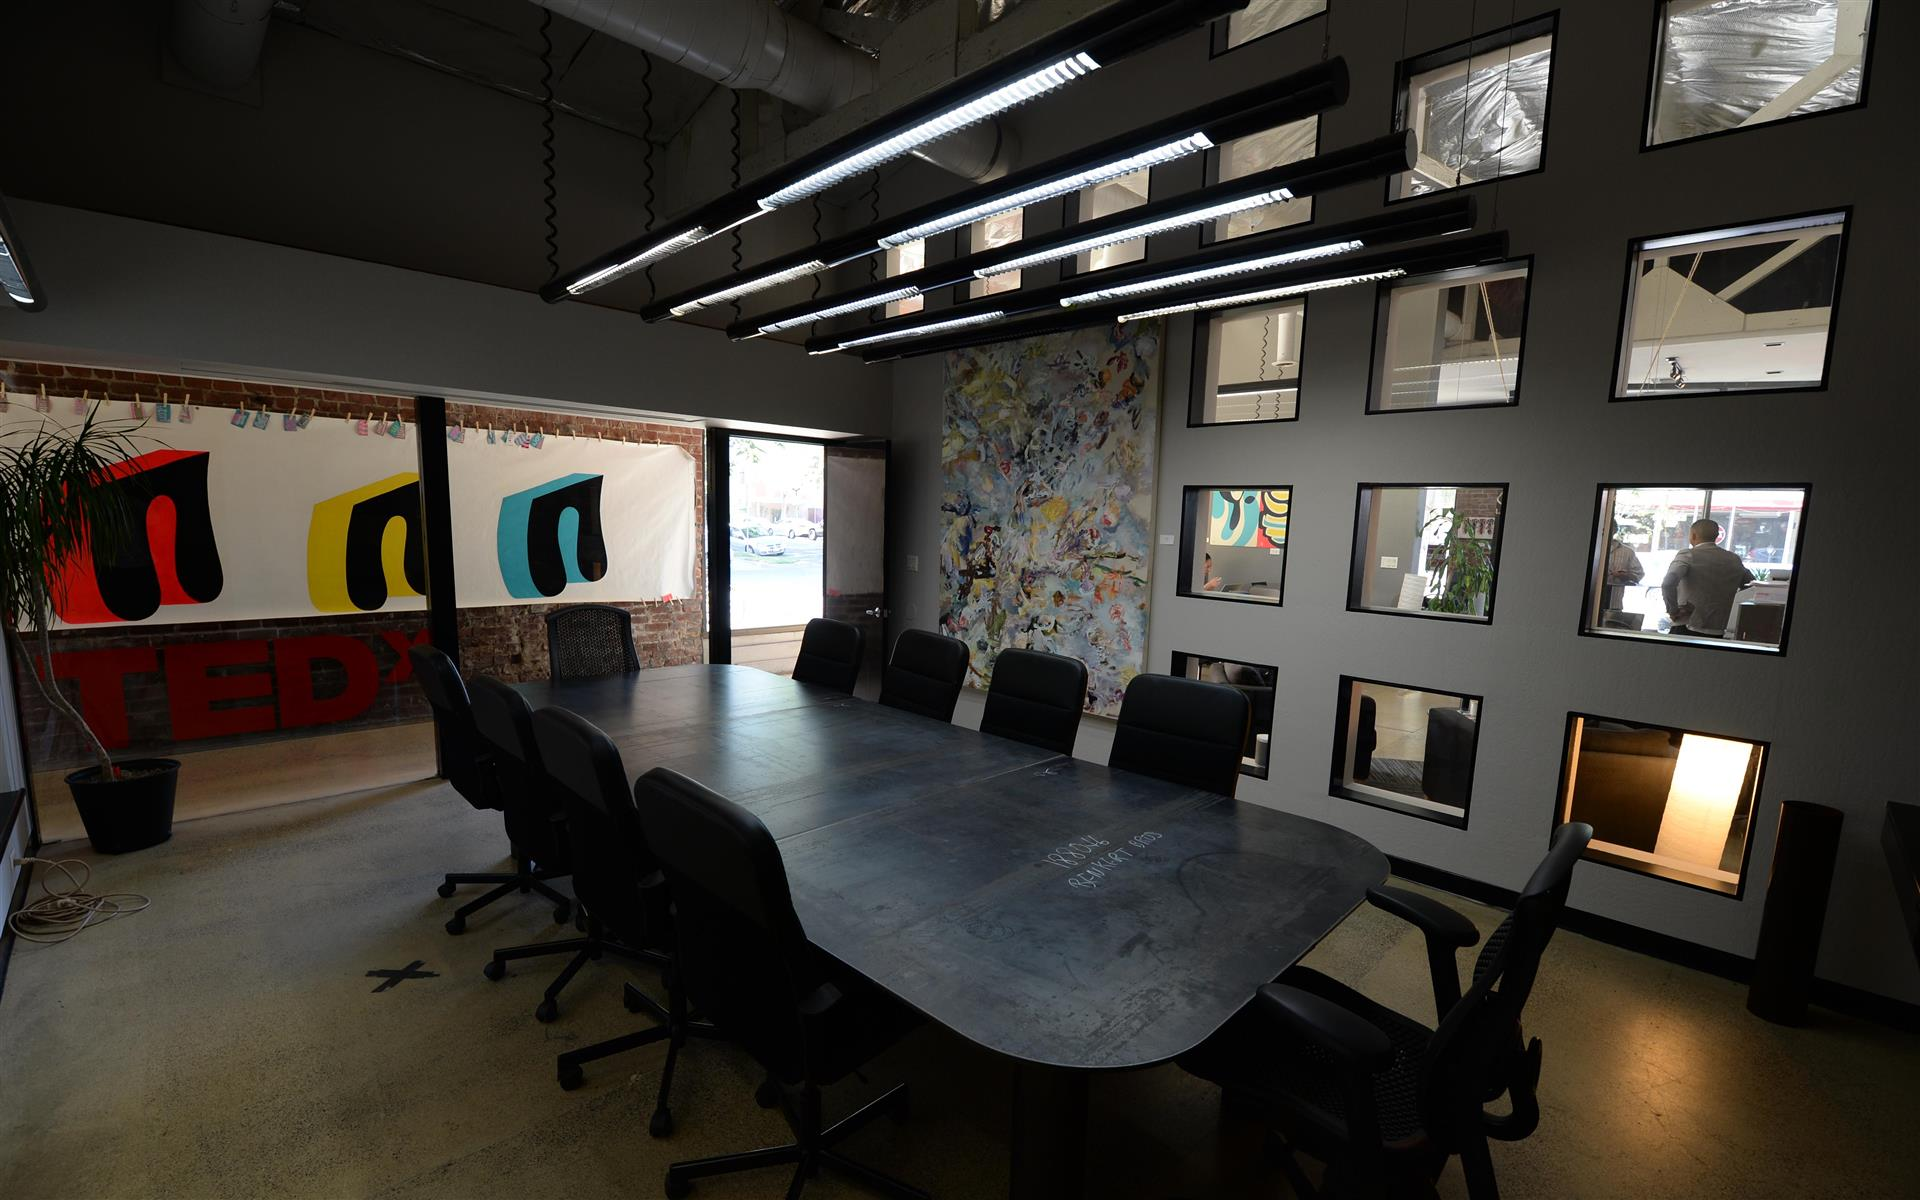 The Urban Hive - Conference Room (Day Time)